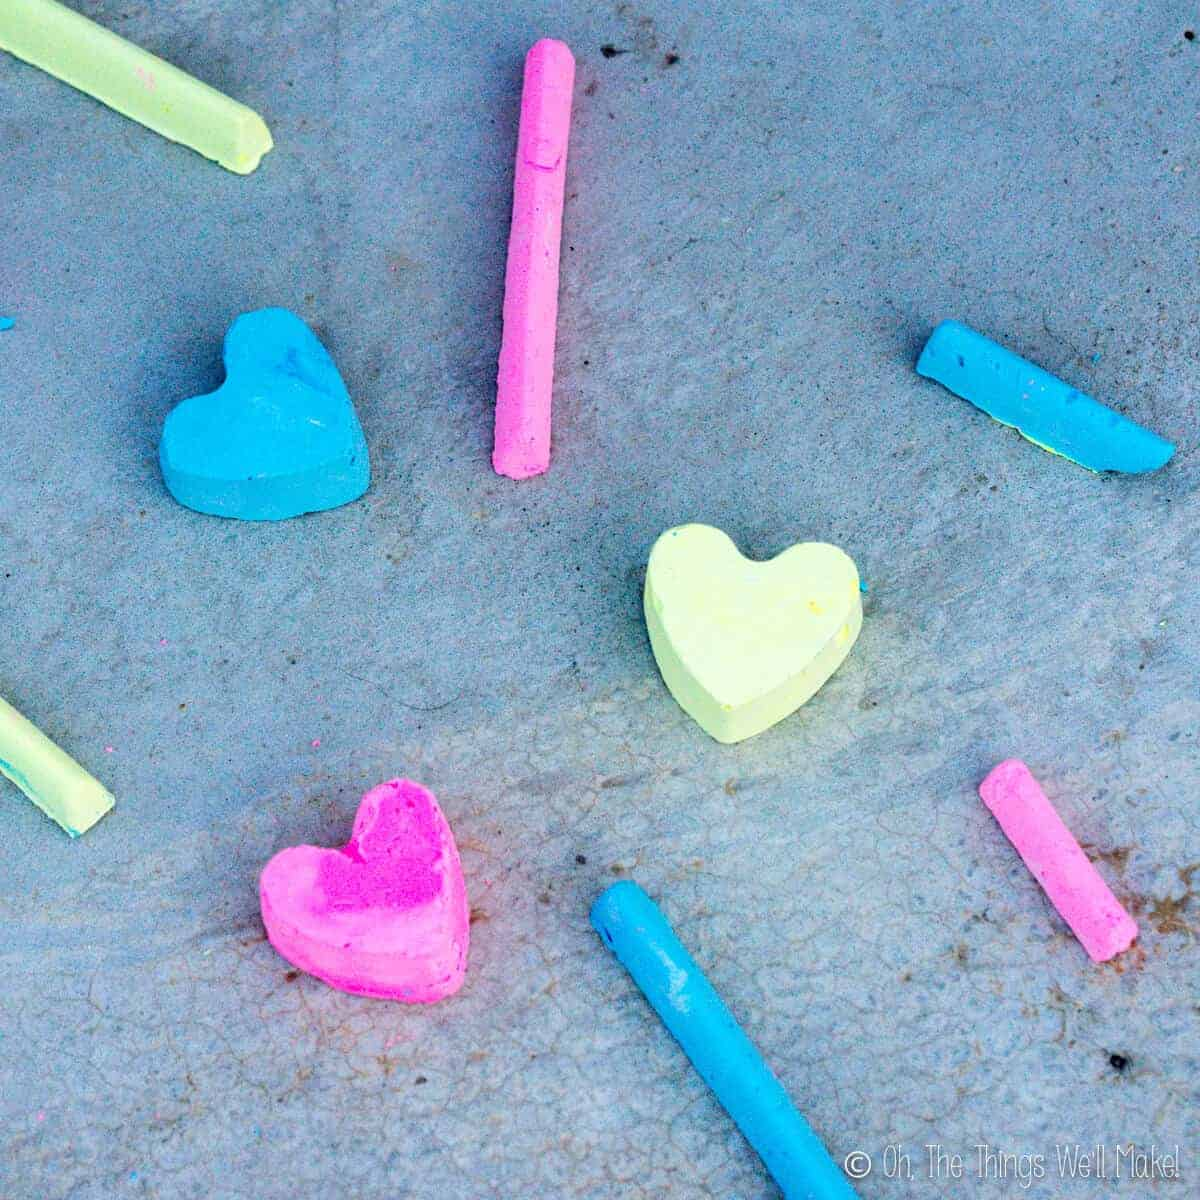 Overhead view of several pieces of homemade sidewalk chalk in three bright colors: pink, blue, and yellow.